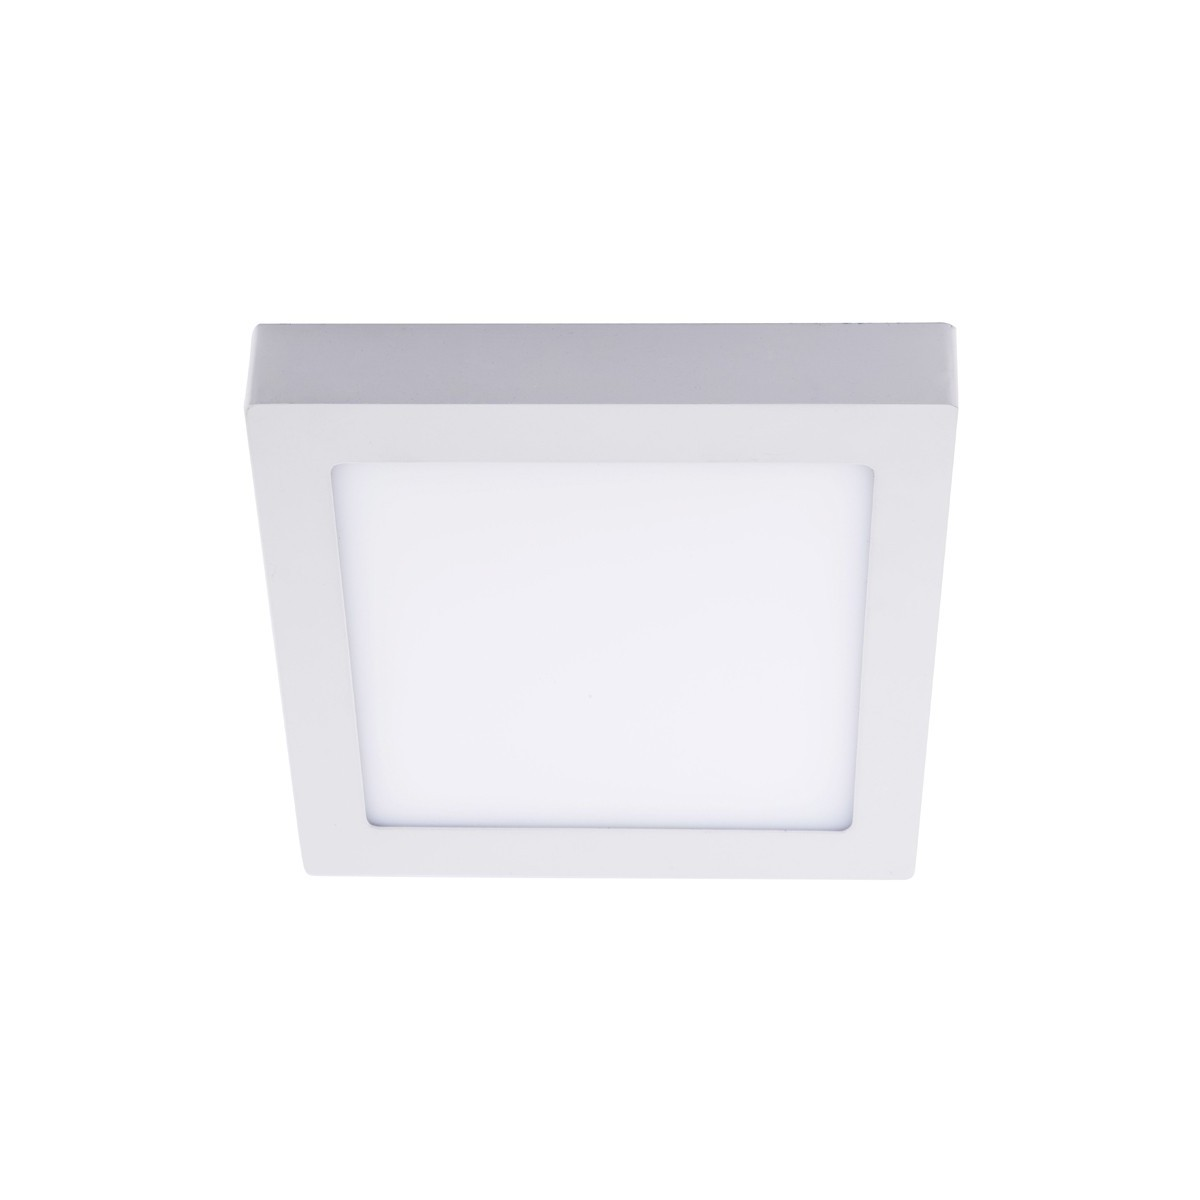 Plafon LED 12W 4000K Know cuadrado blanco